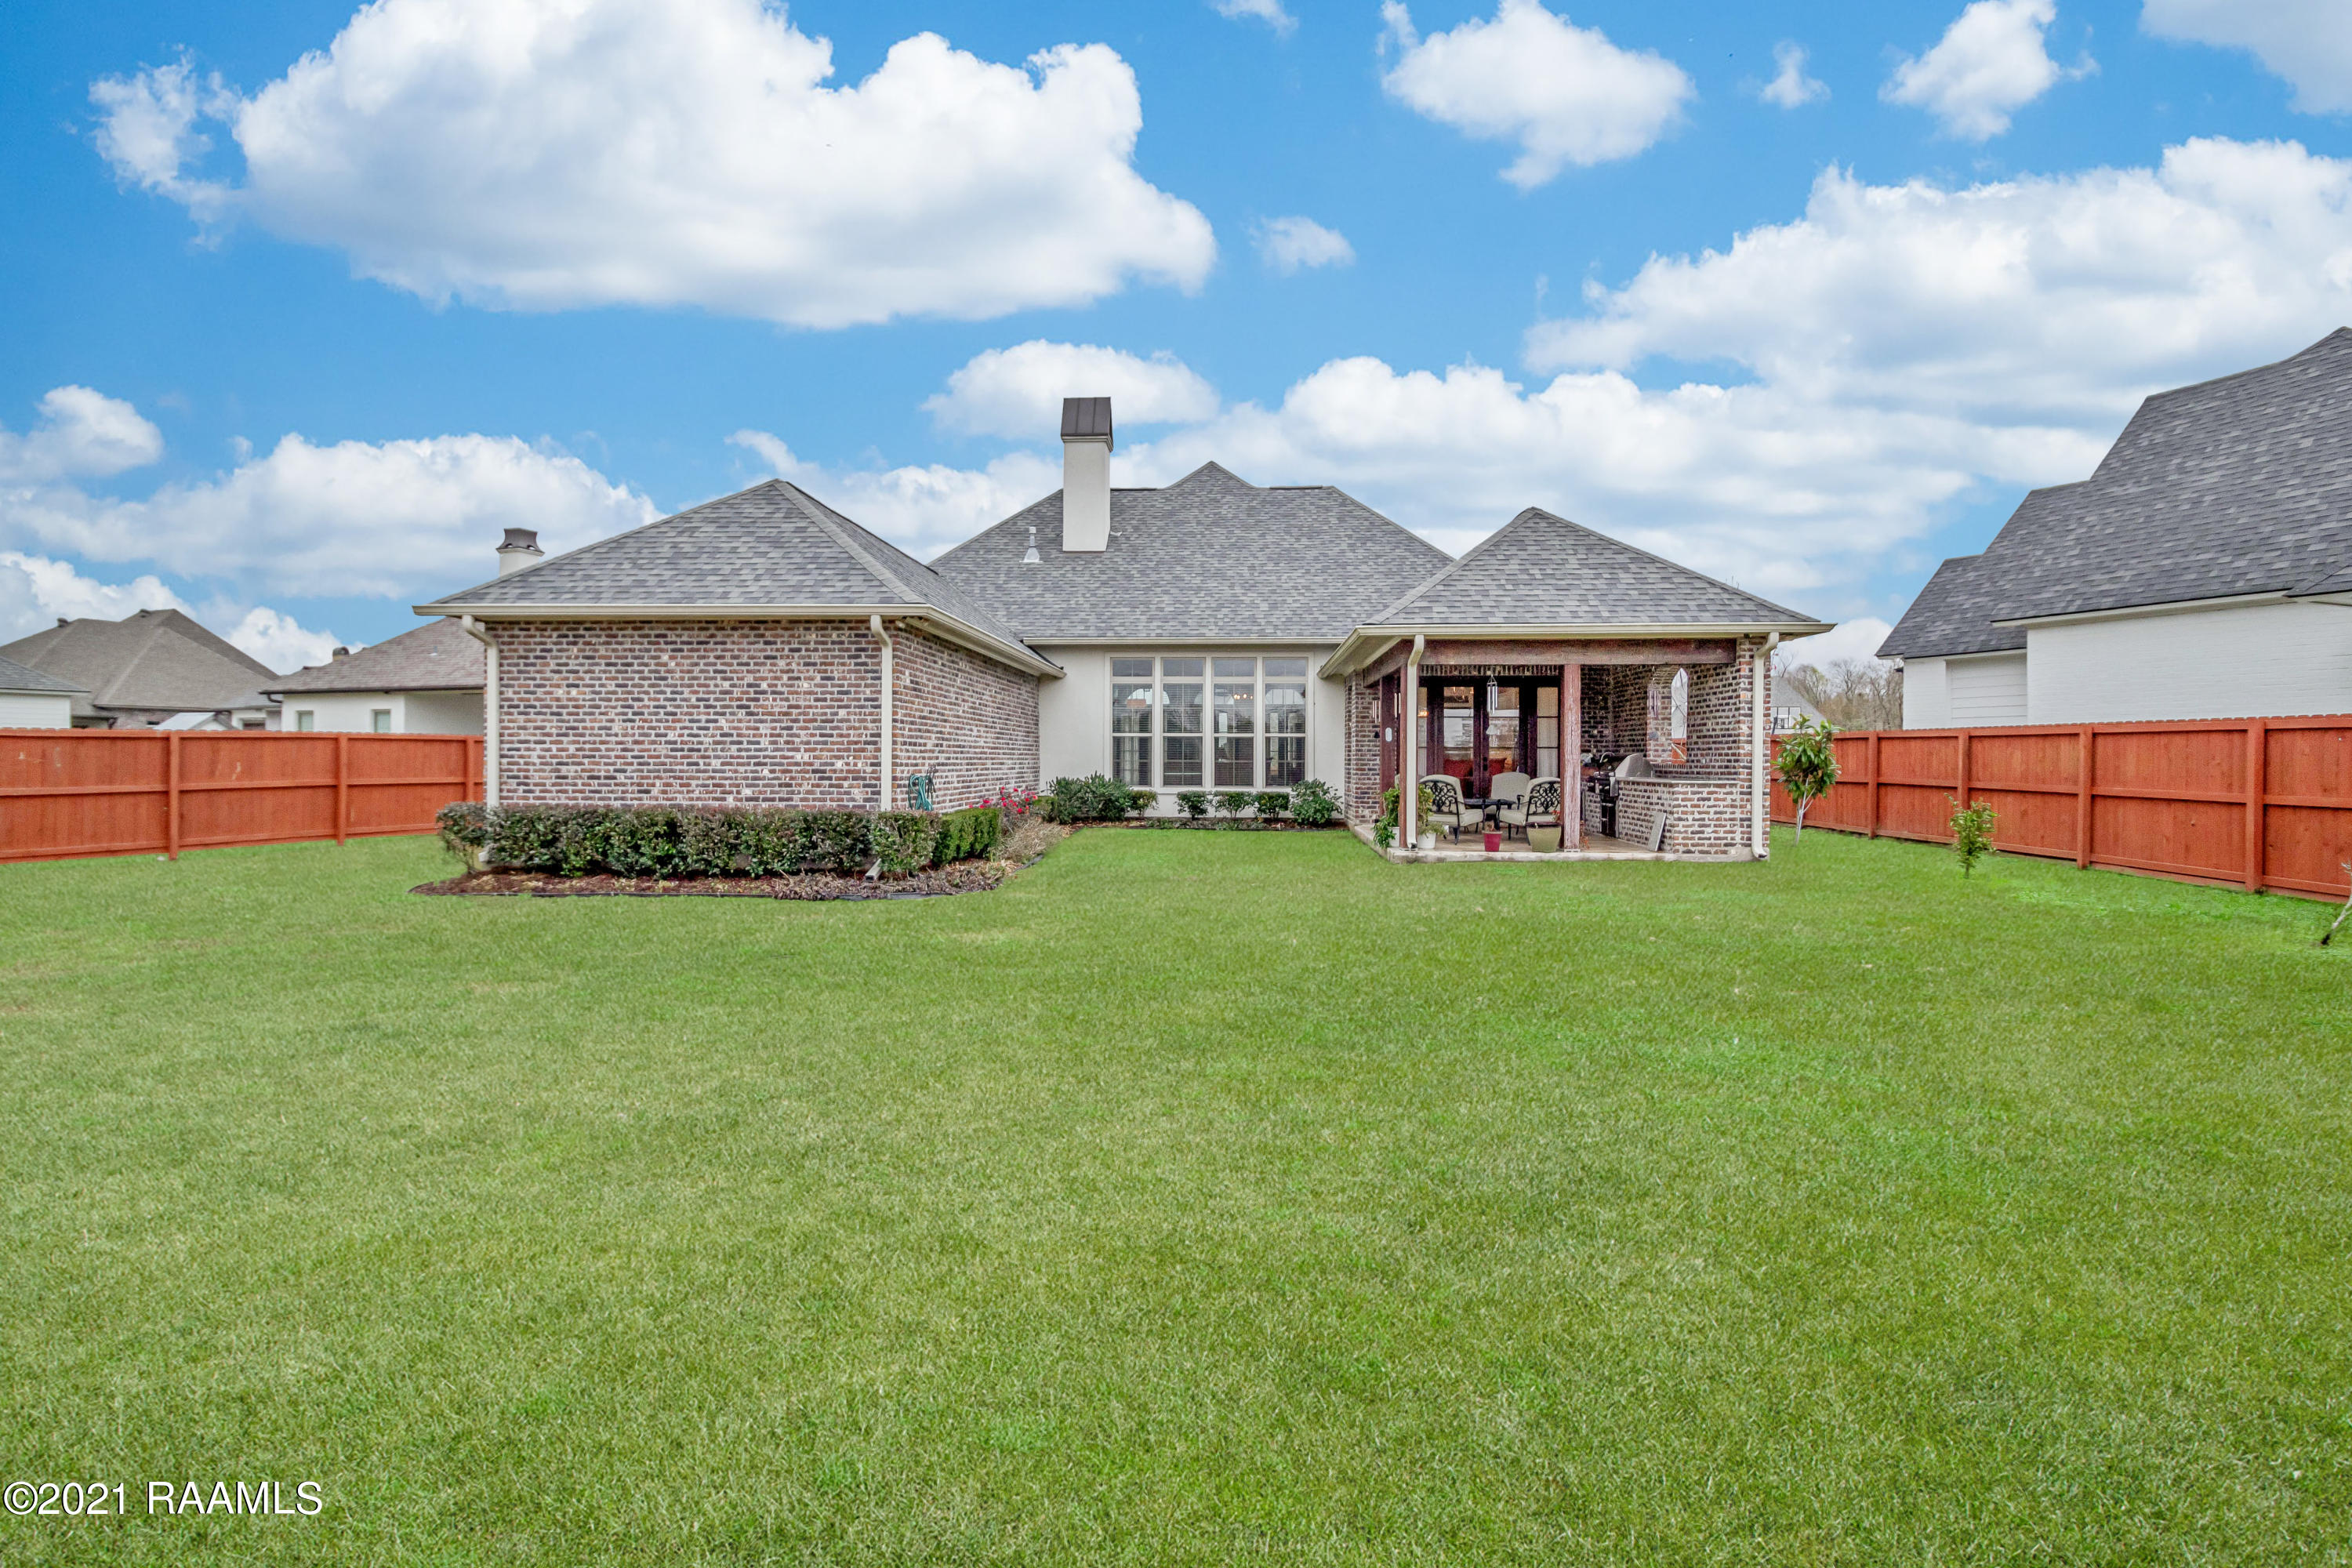 128 Carriage Lakes Drive, Youngsville, LA 70592 Photo #28